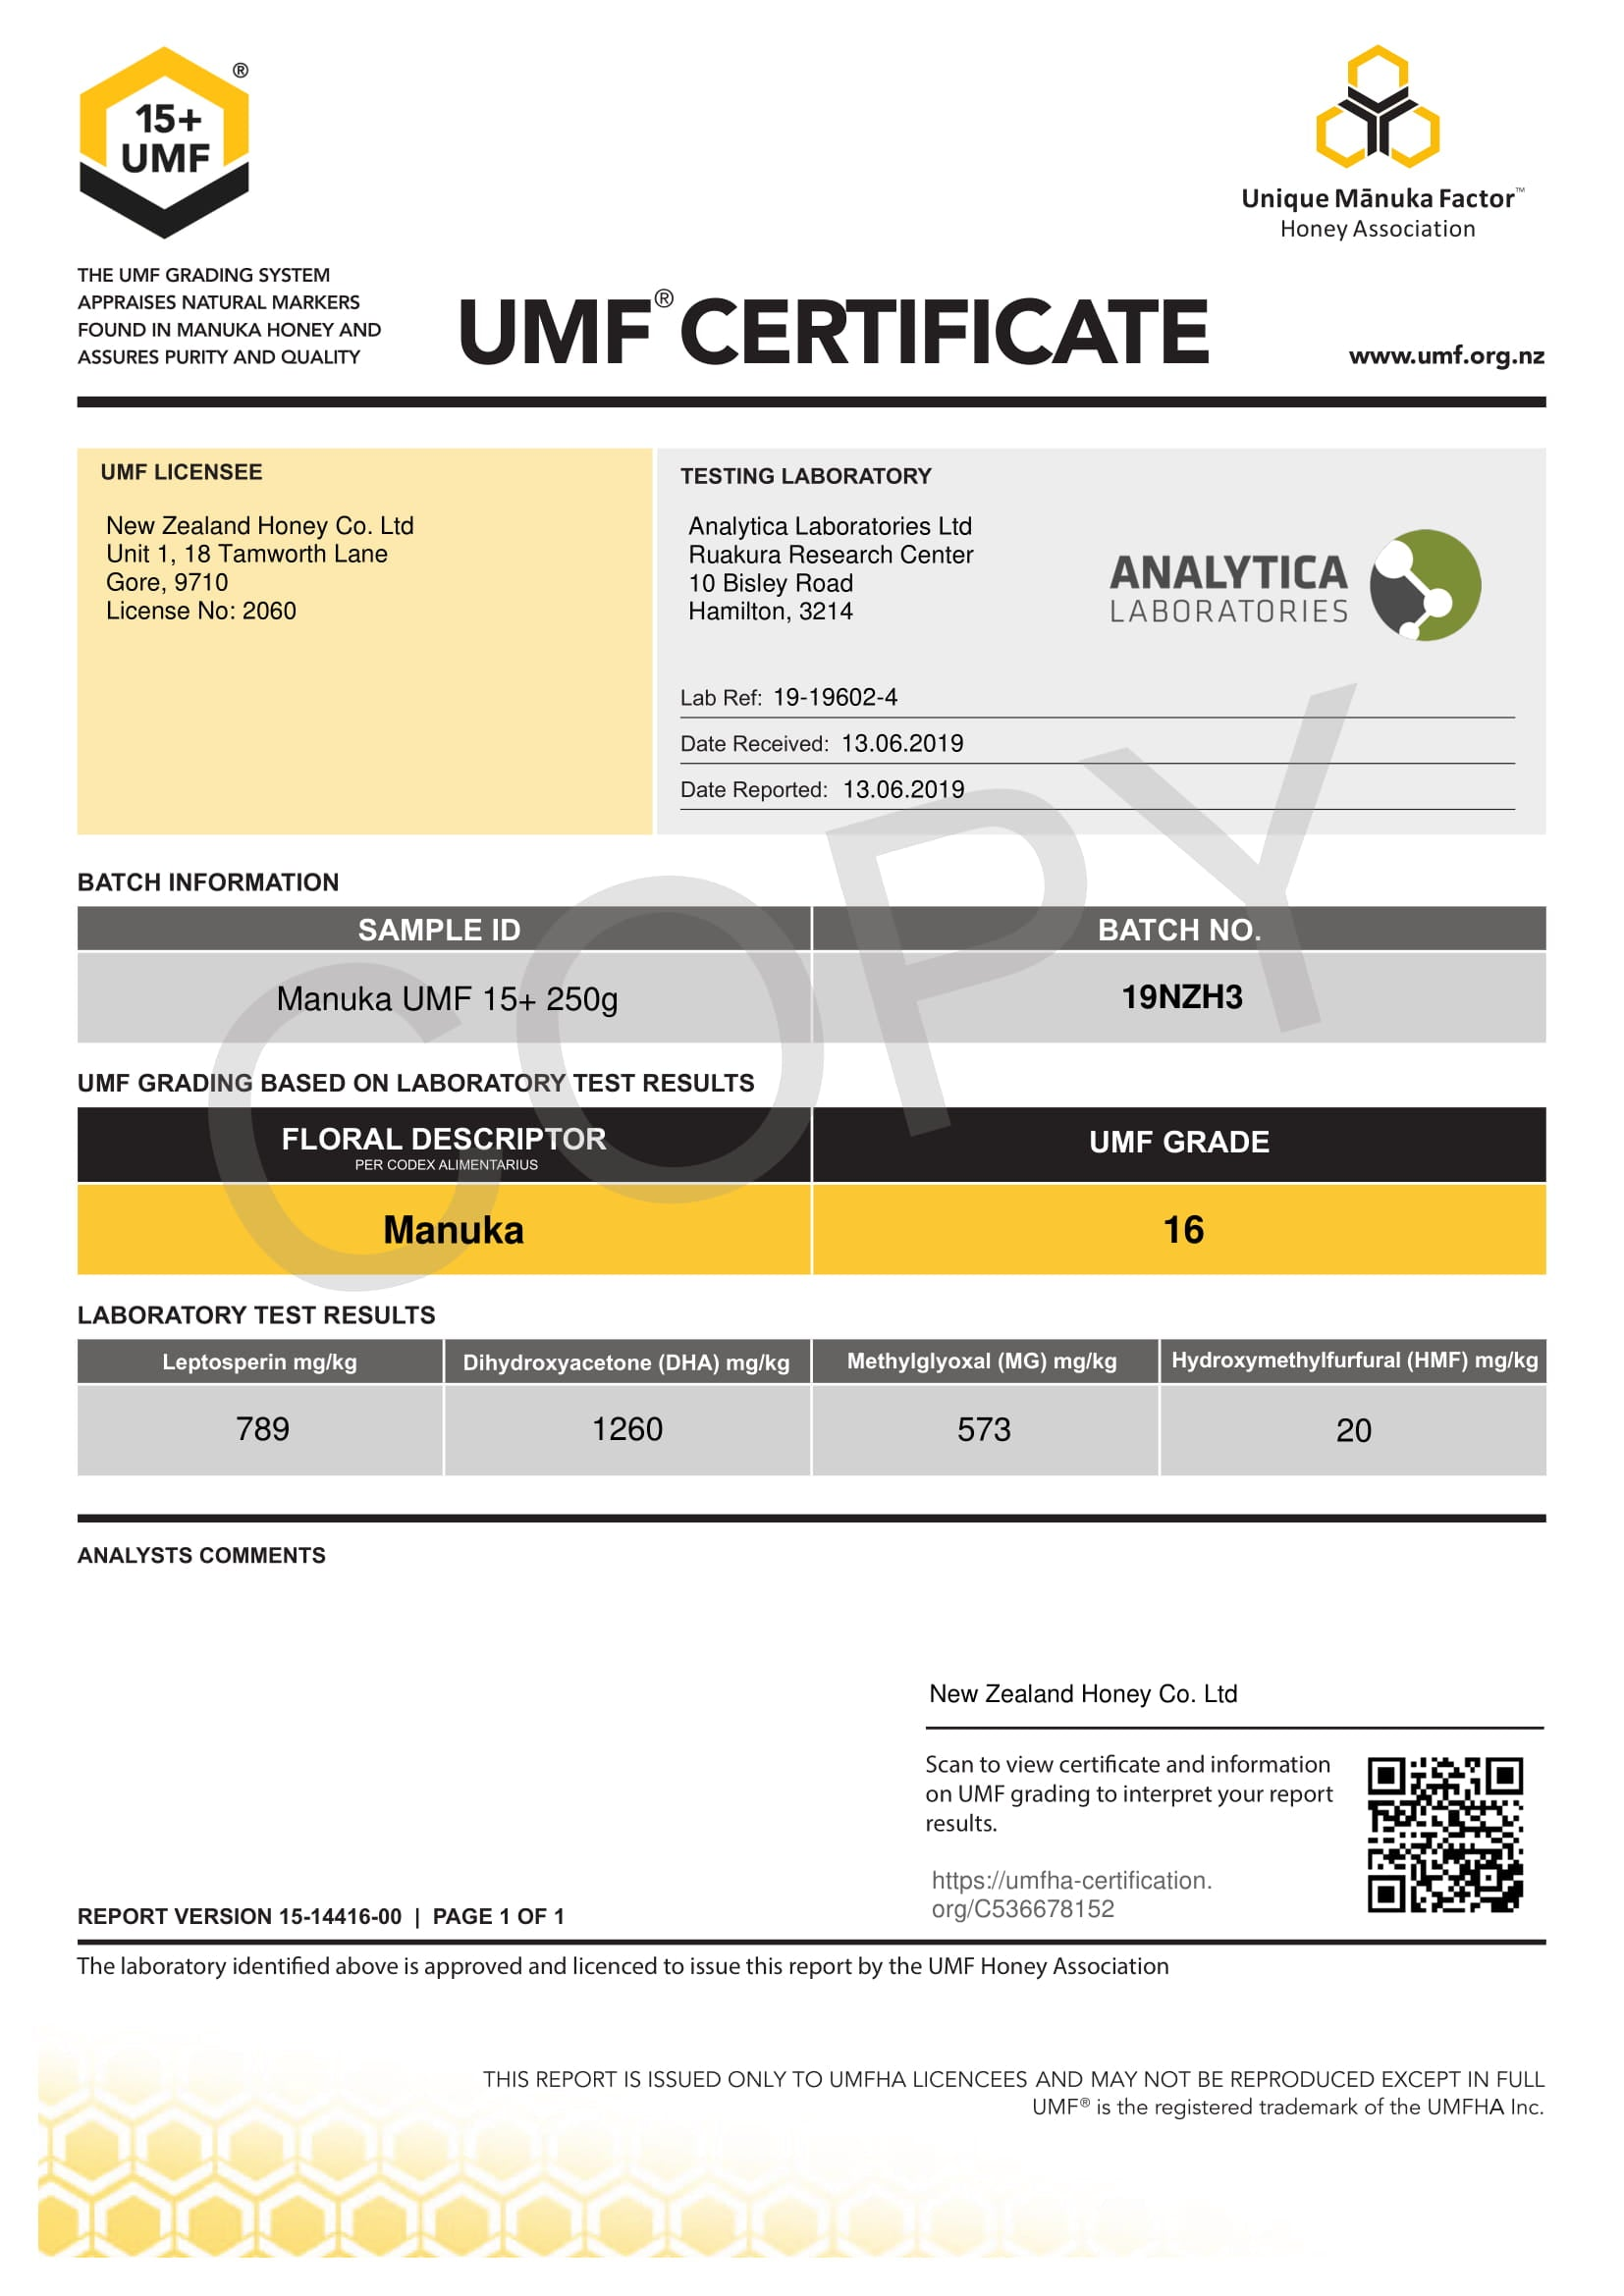 Manuka Honey UMF Certificate for LOT 19NZH3 from New Zealand Honey Co.